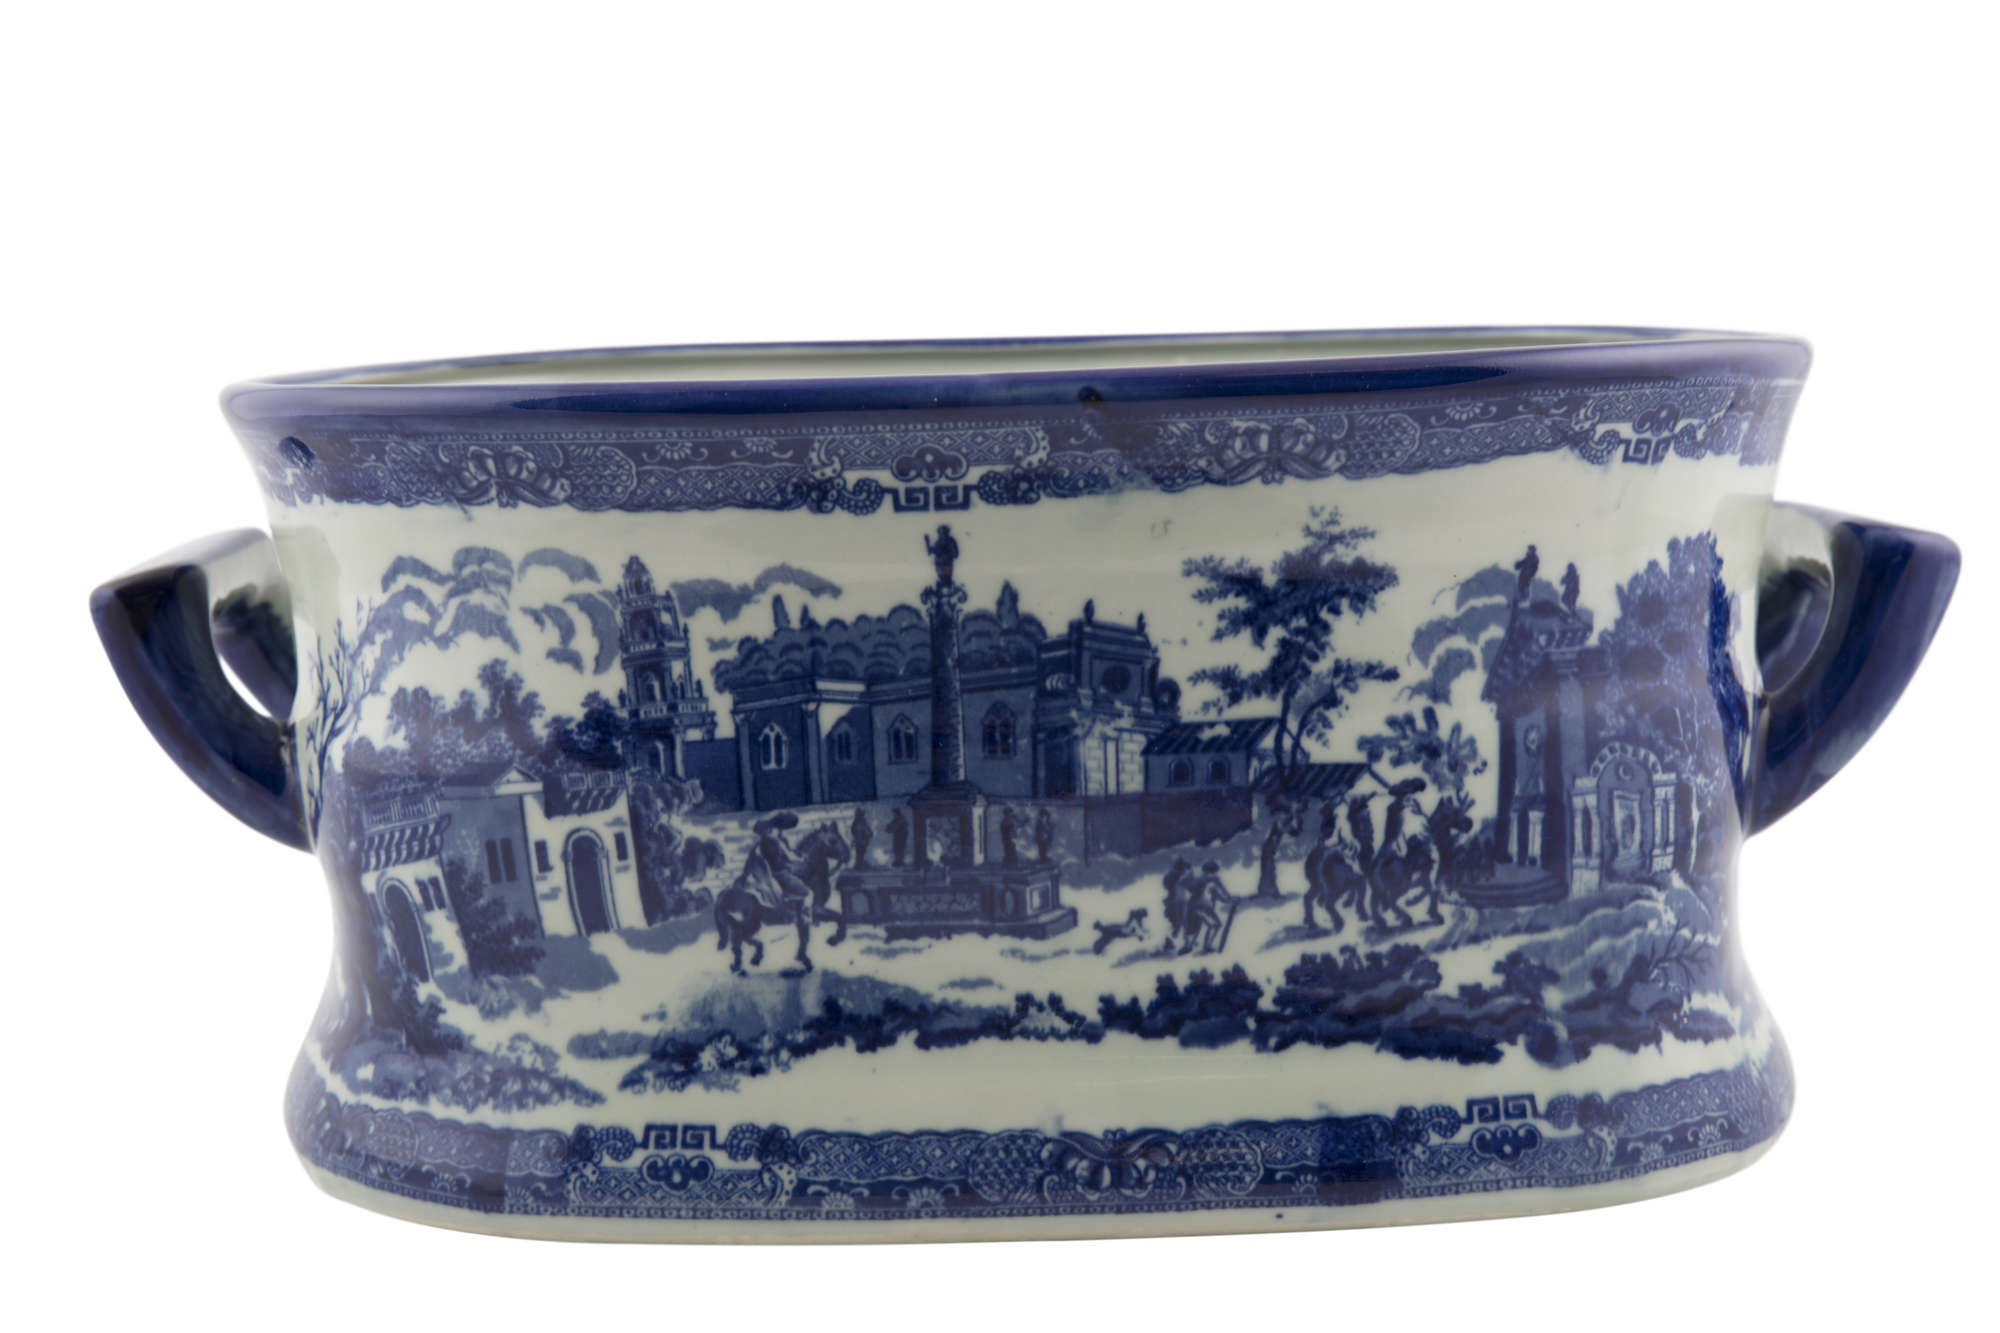 LOT:491 | A VICTORIAN IRONSTONE BLUE AND WHITE PRINTED FOOT BATH ...